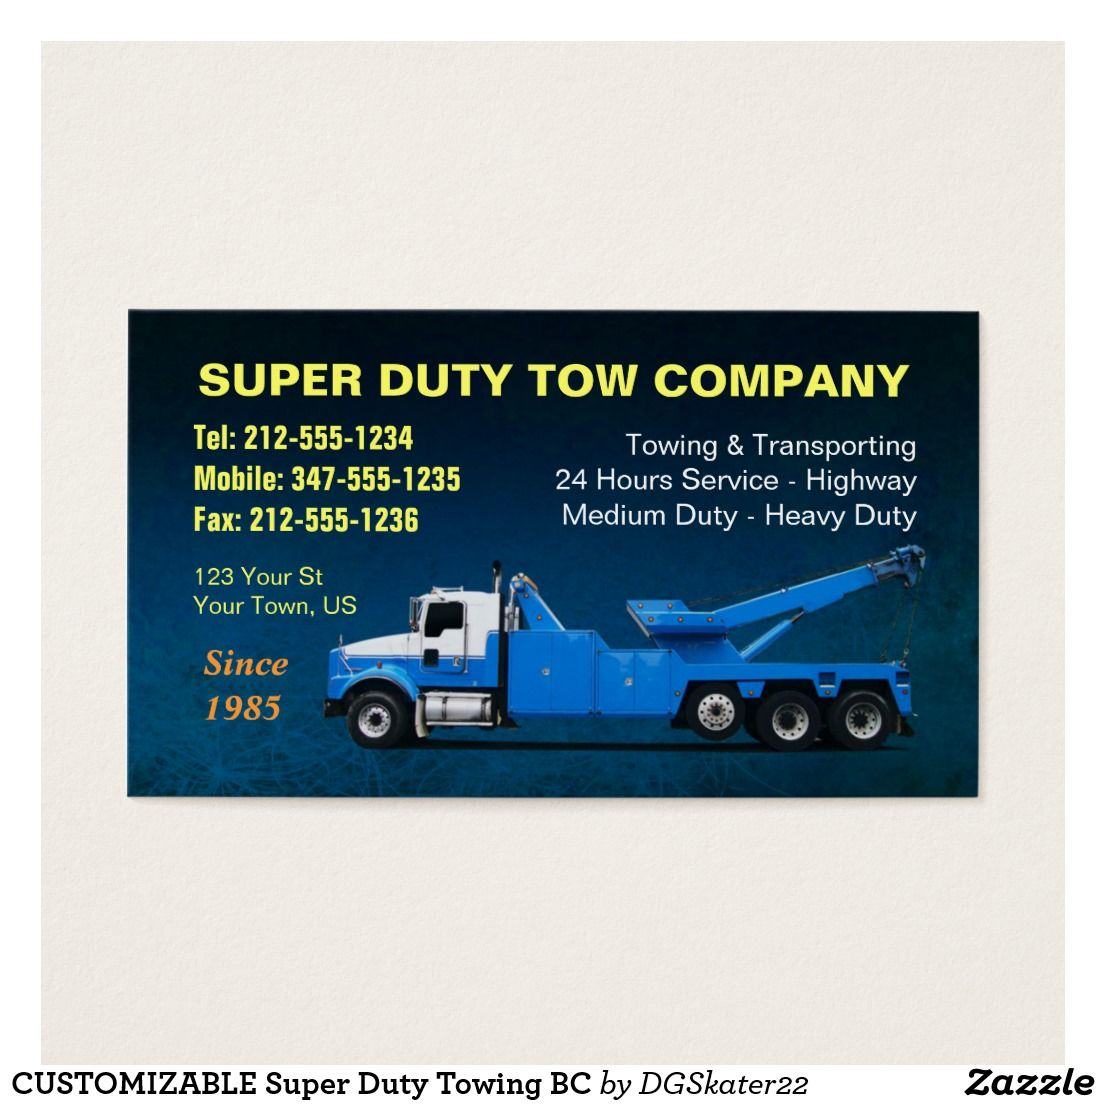 CUSTOMIZABLE Super Duty Towing BC Business Card | Pinterest ...